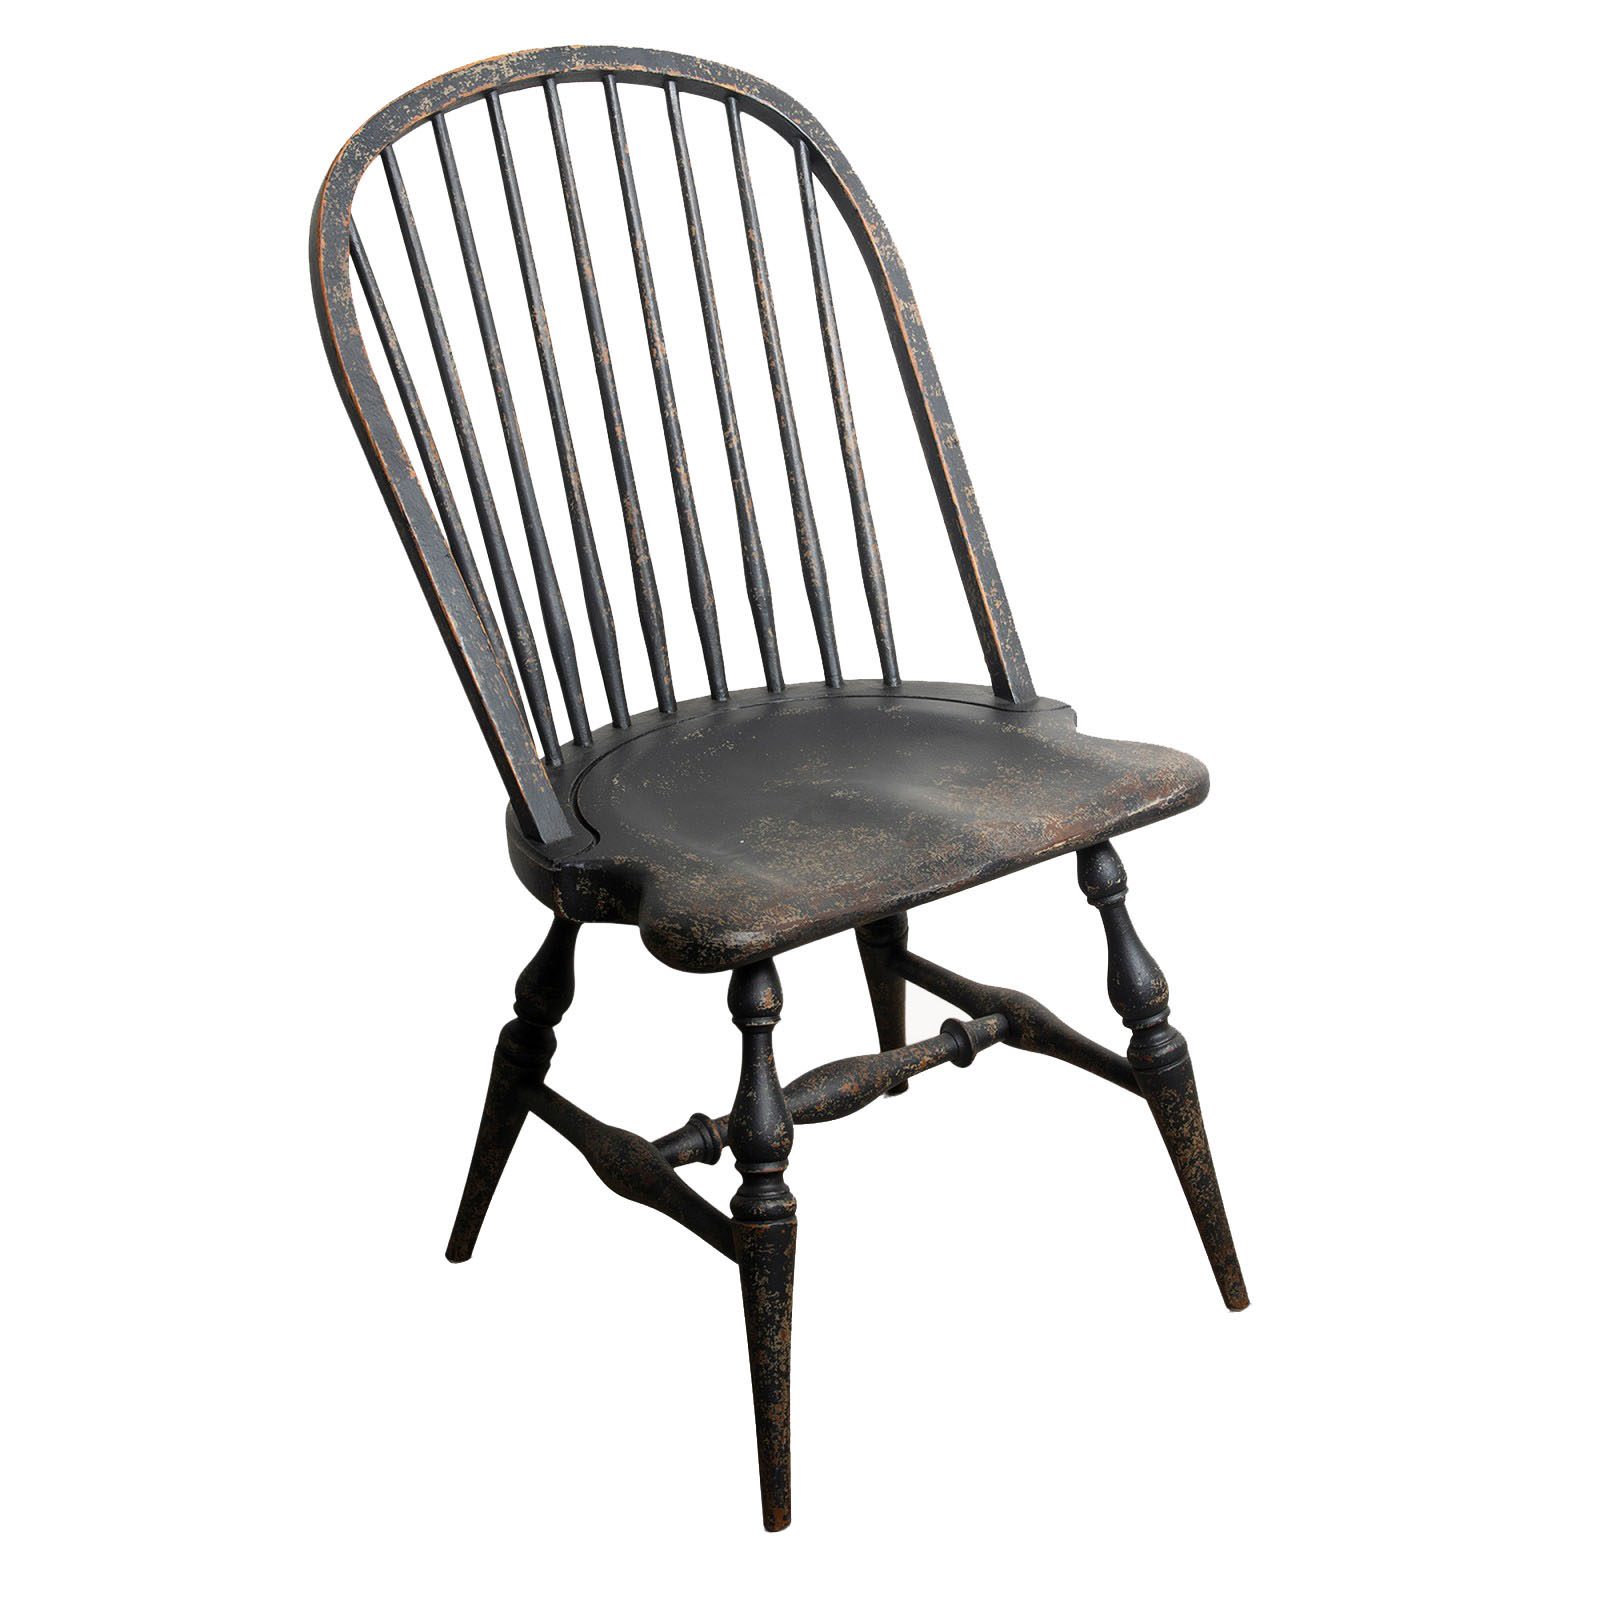 Richmond Distressed Black Windsor Chair 1 copy